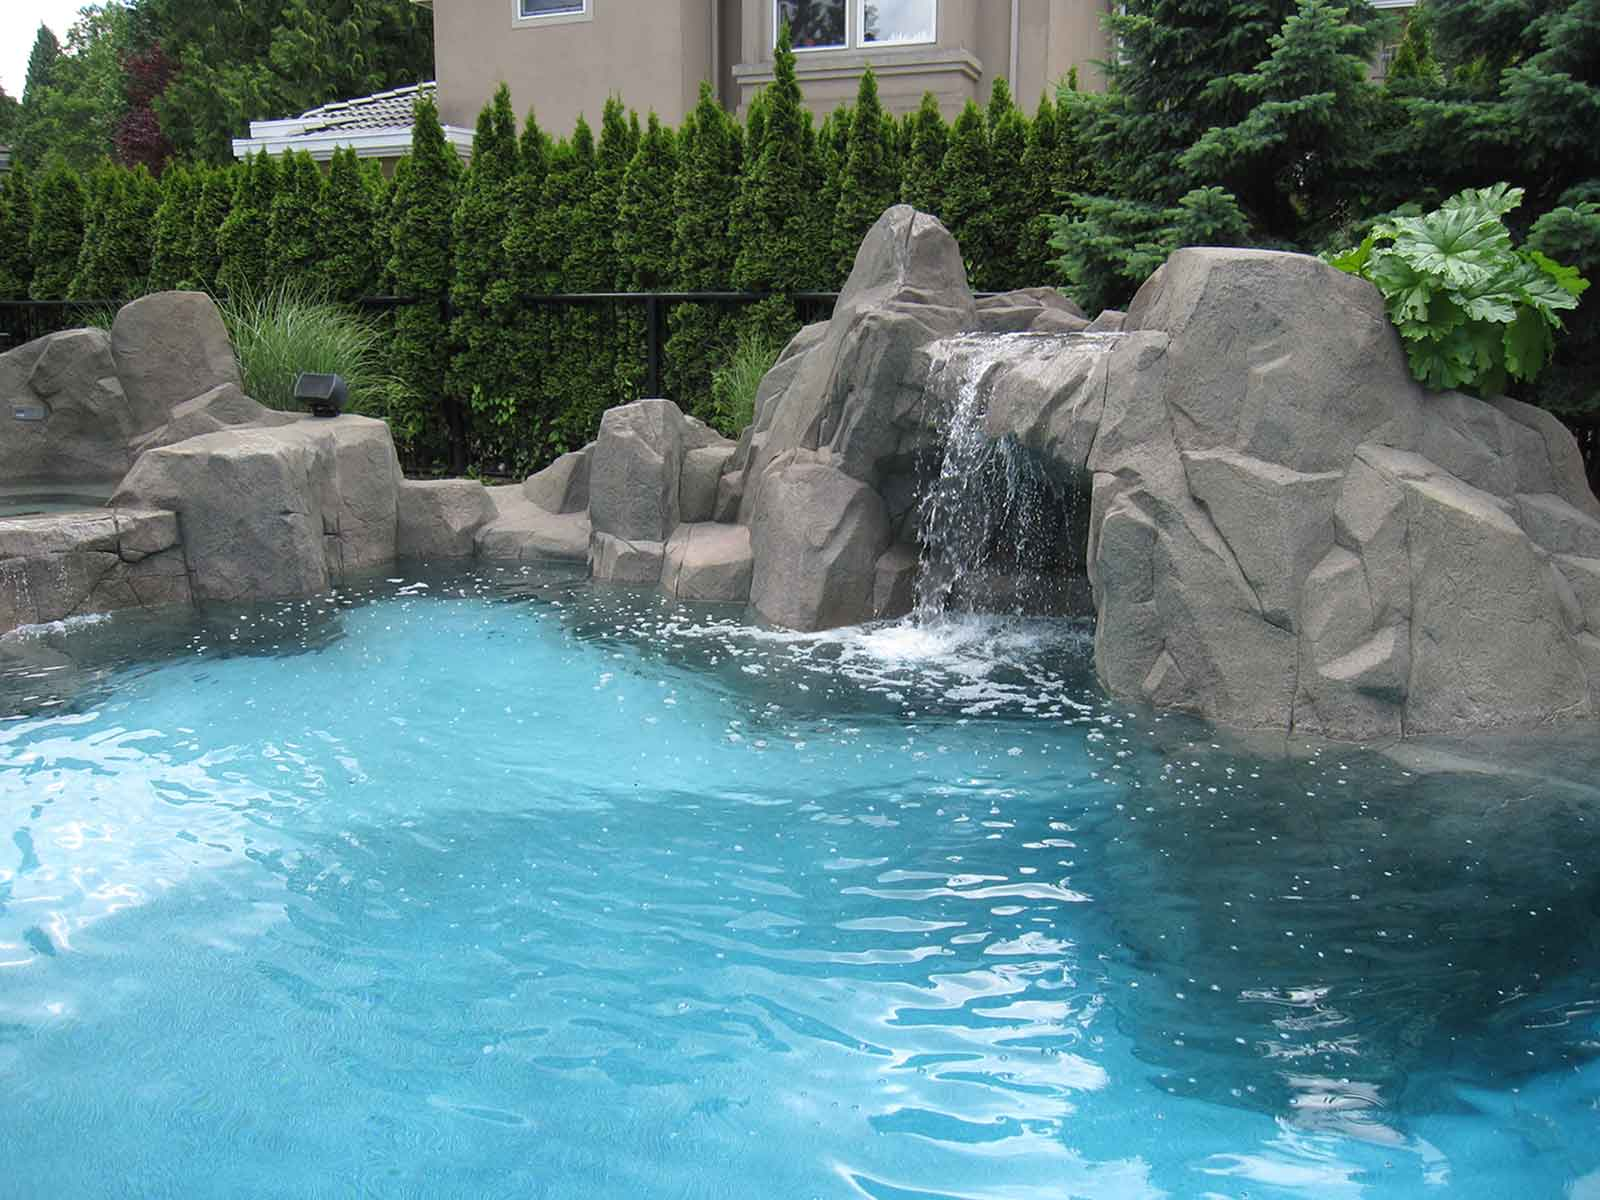 Luxury custom designed swimming pool with artificial rock wall surround